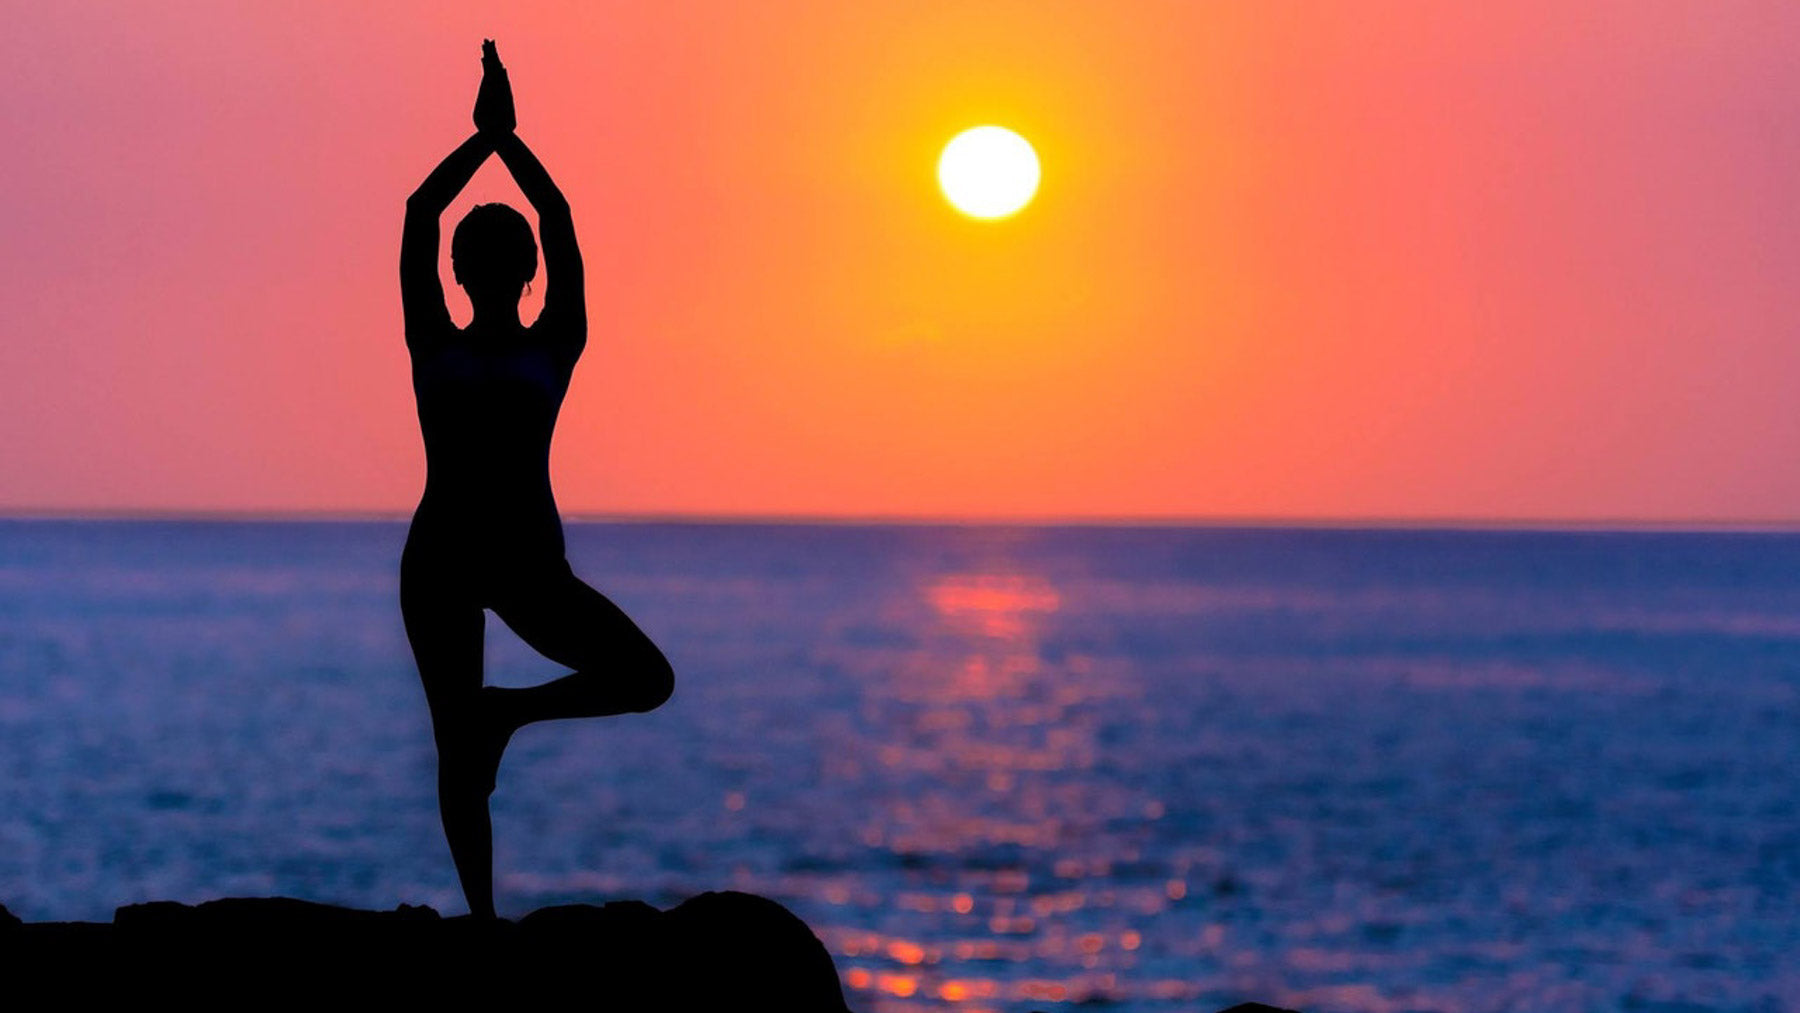 silhouette of woman in yoga pose in front of beautiful sunset to represent sober wellbeing